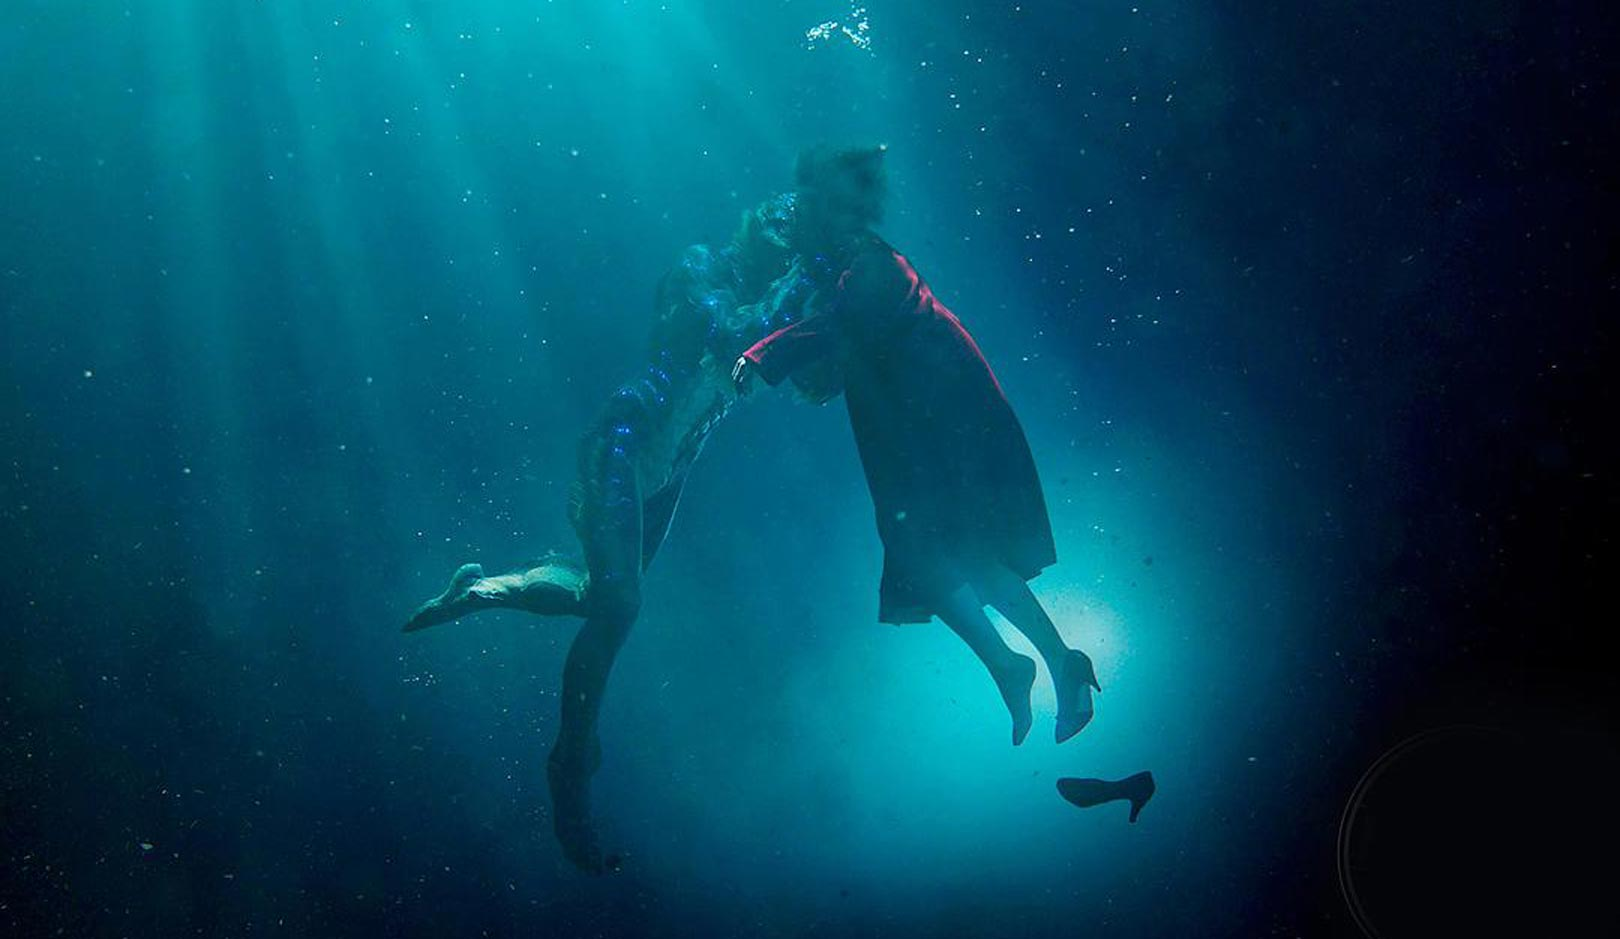 'The Shape Of Water' Review: A Charming, Beautiful Film Flawed By Narrative Trappings